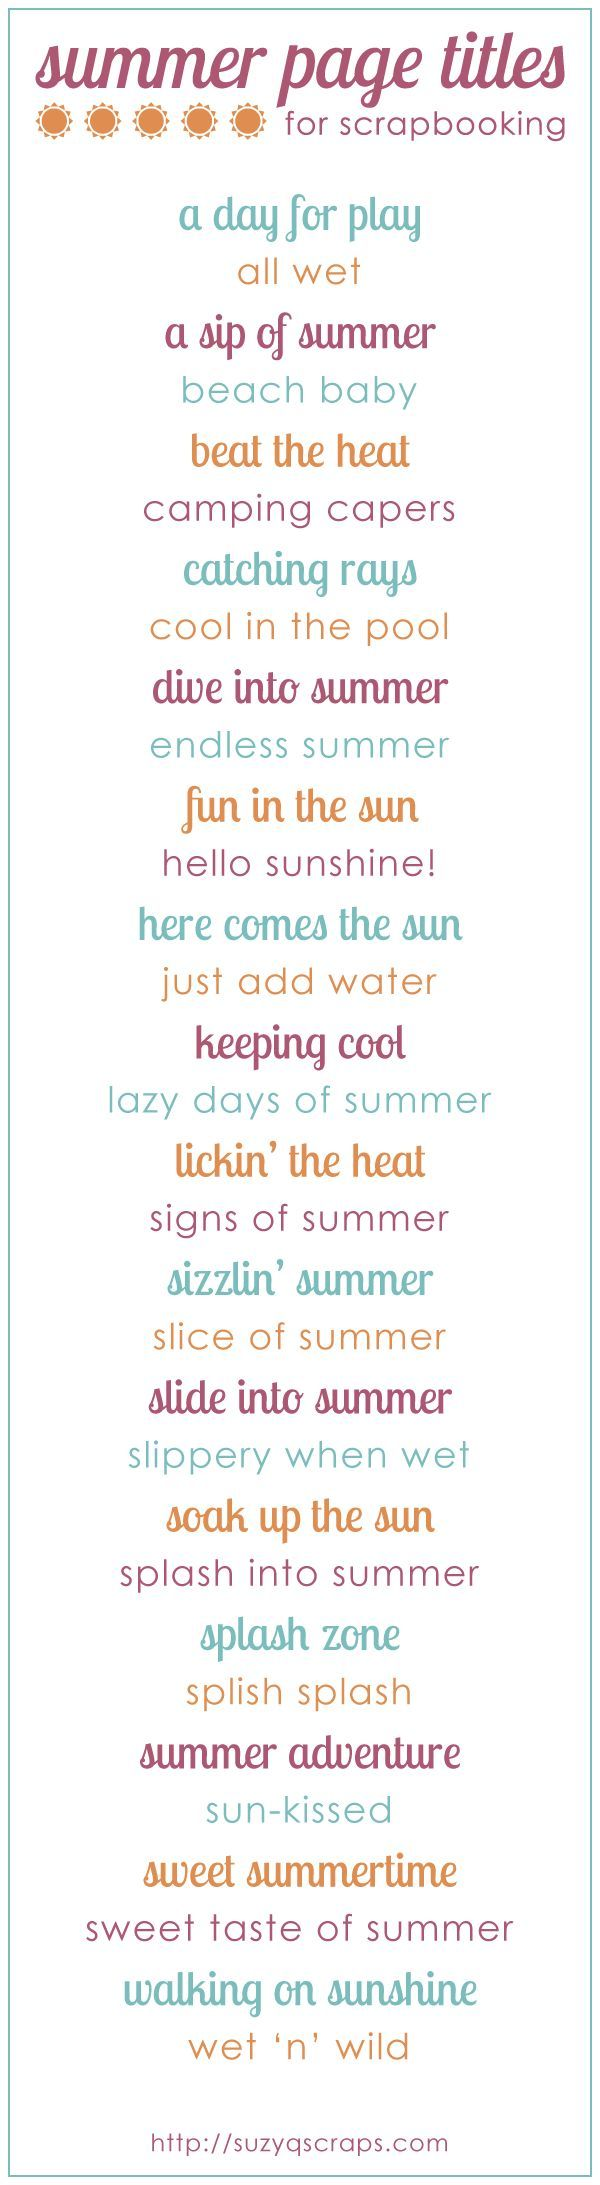 Summer scrapbook page titles